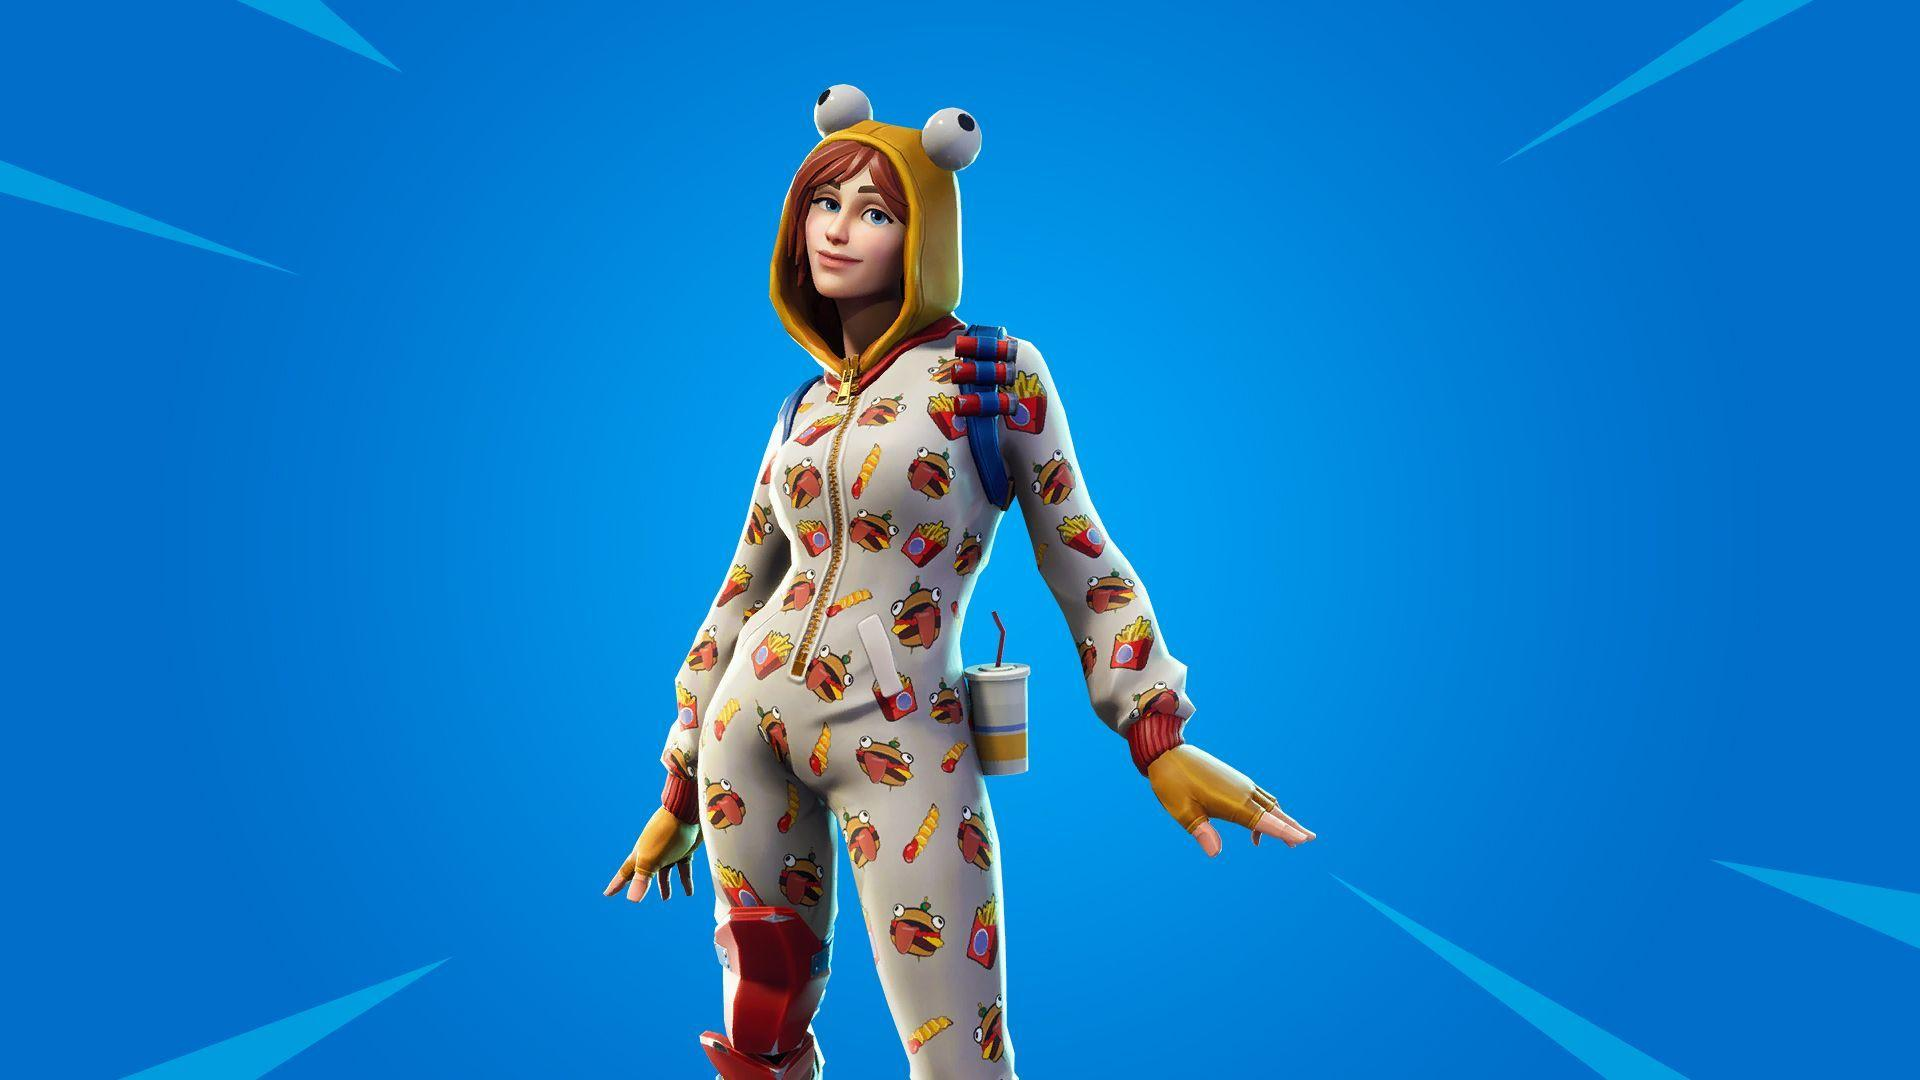 The previously leaked Onesie skin is no longer coming to Fortnite ...